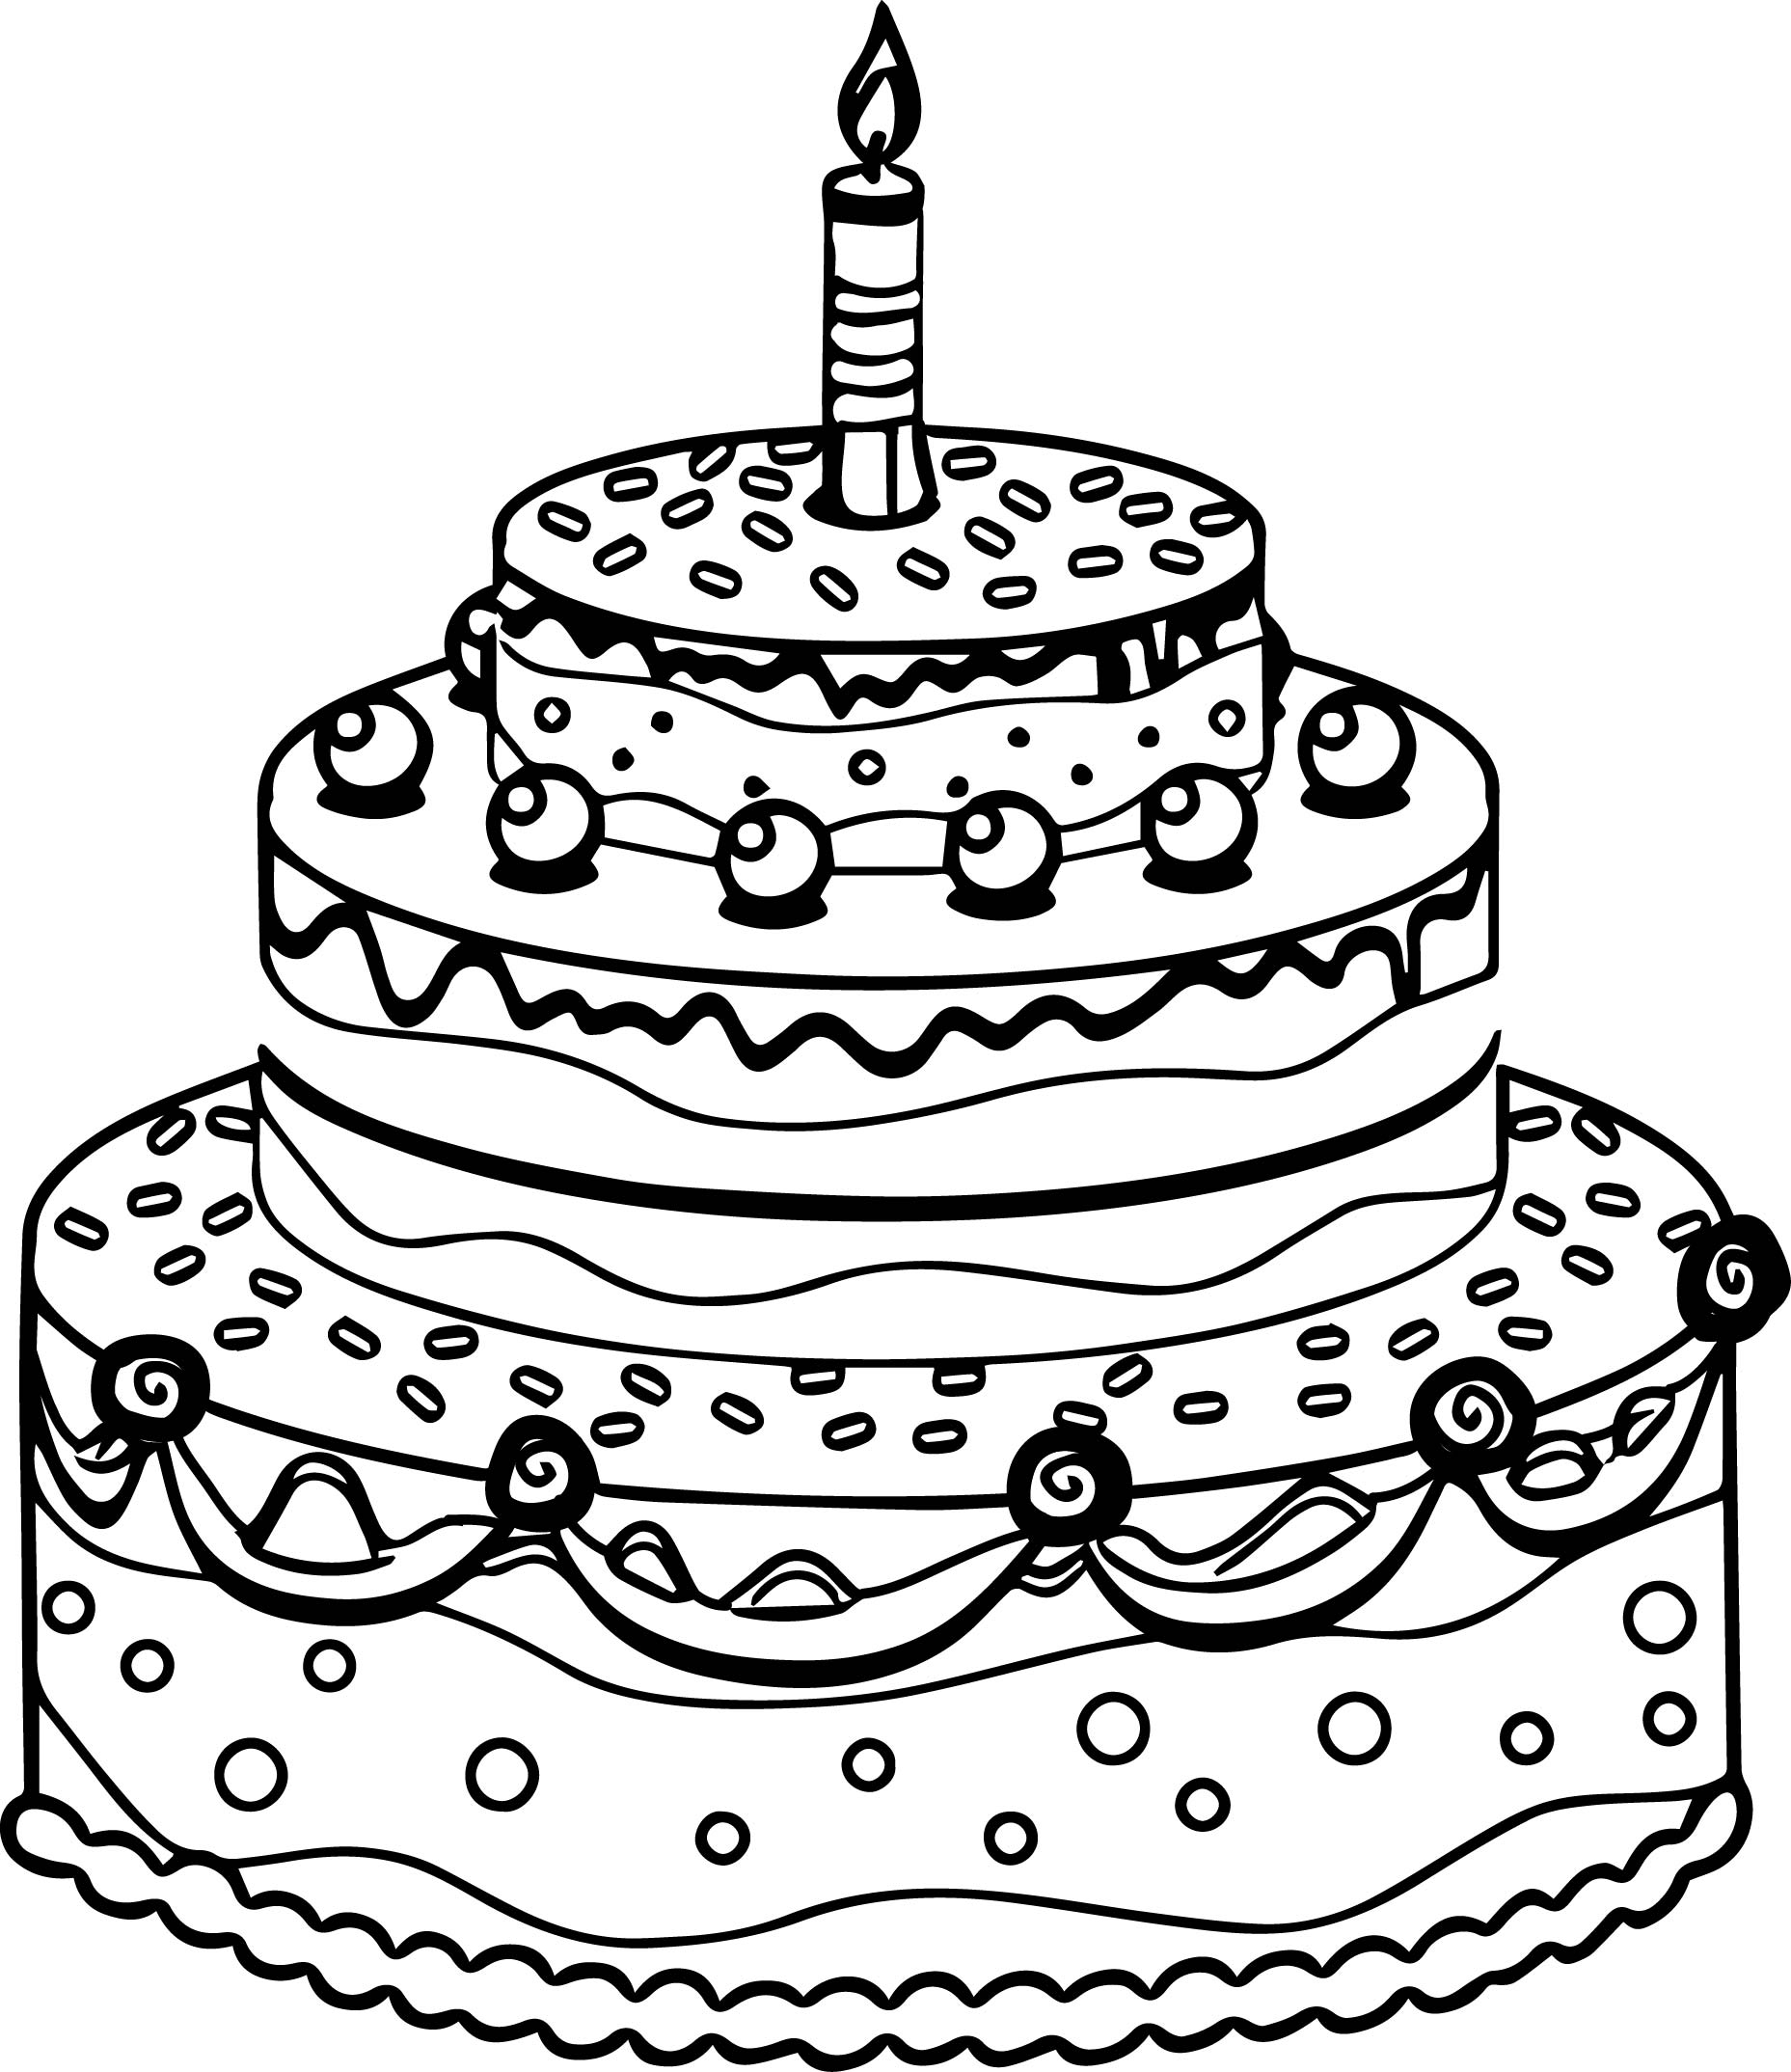 Birthday Cake Pencil Drawing At Getdrawings